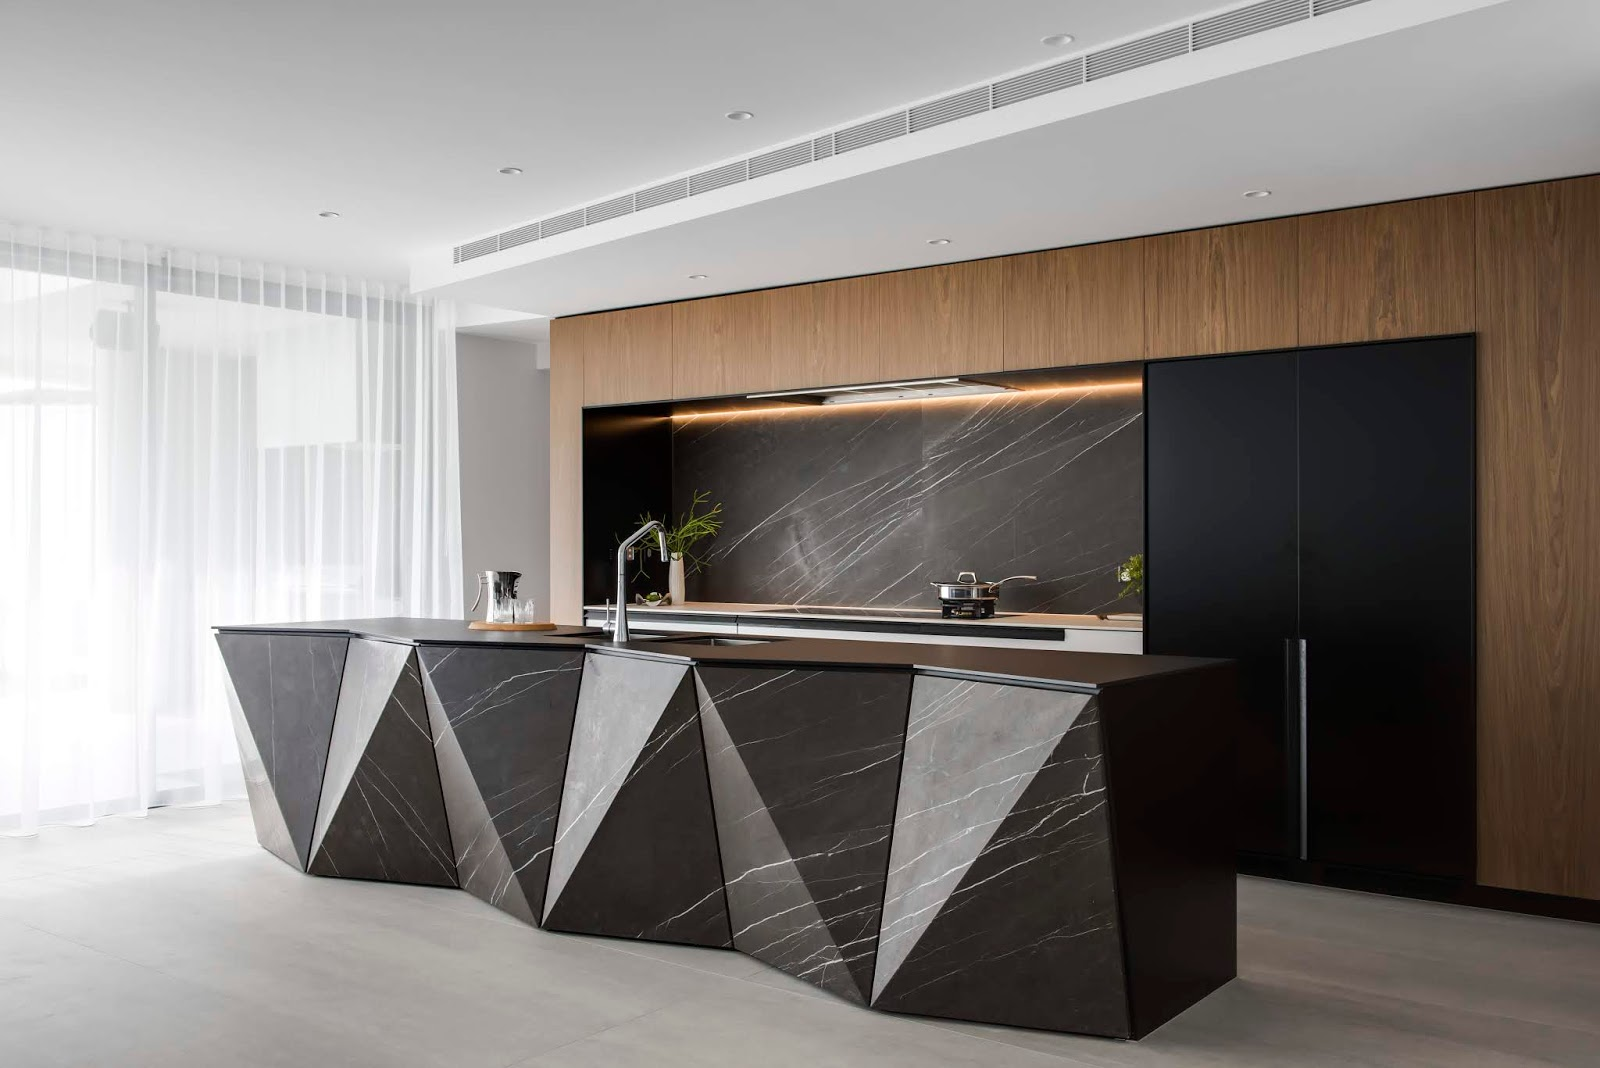 Kitchen Builder Plates Minosa Kbdi Australian Designer Of The Year 2018 Design Does Exactly That Architecture This Home Was Very Angular And Clients Desire For A Statement Piece Clear Form Outset